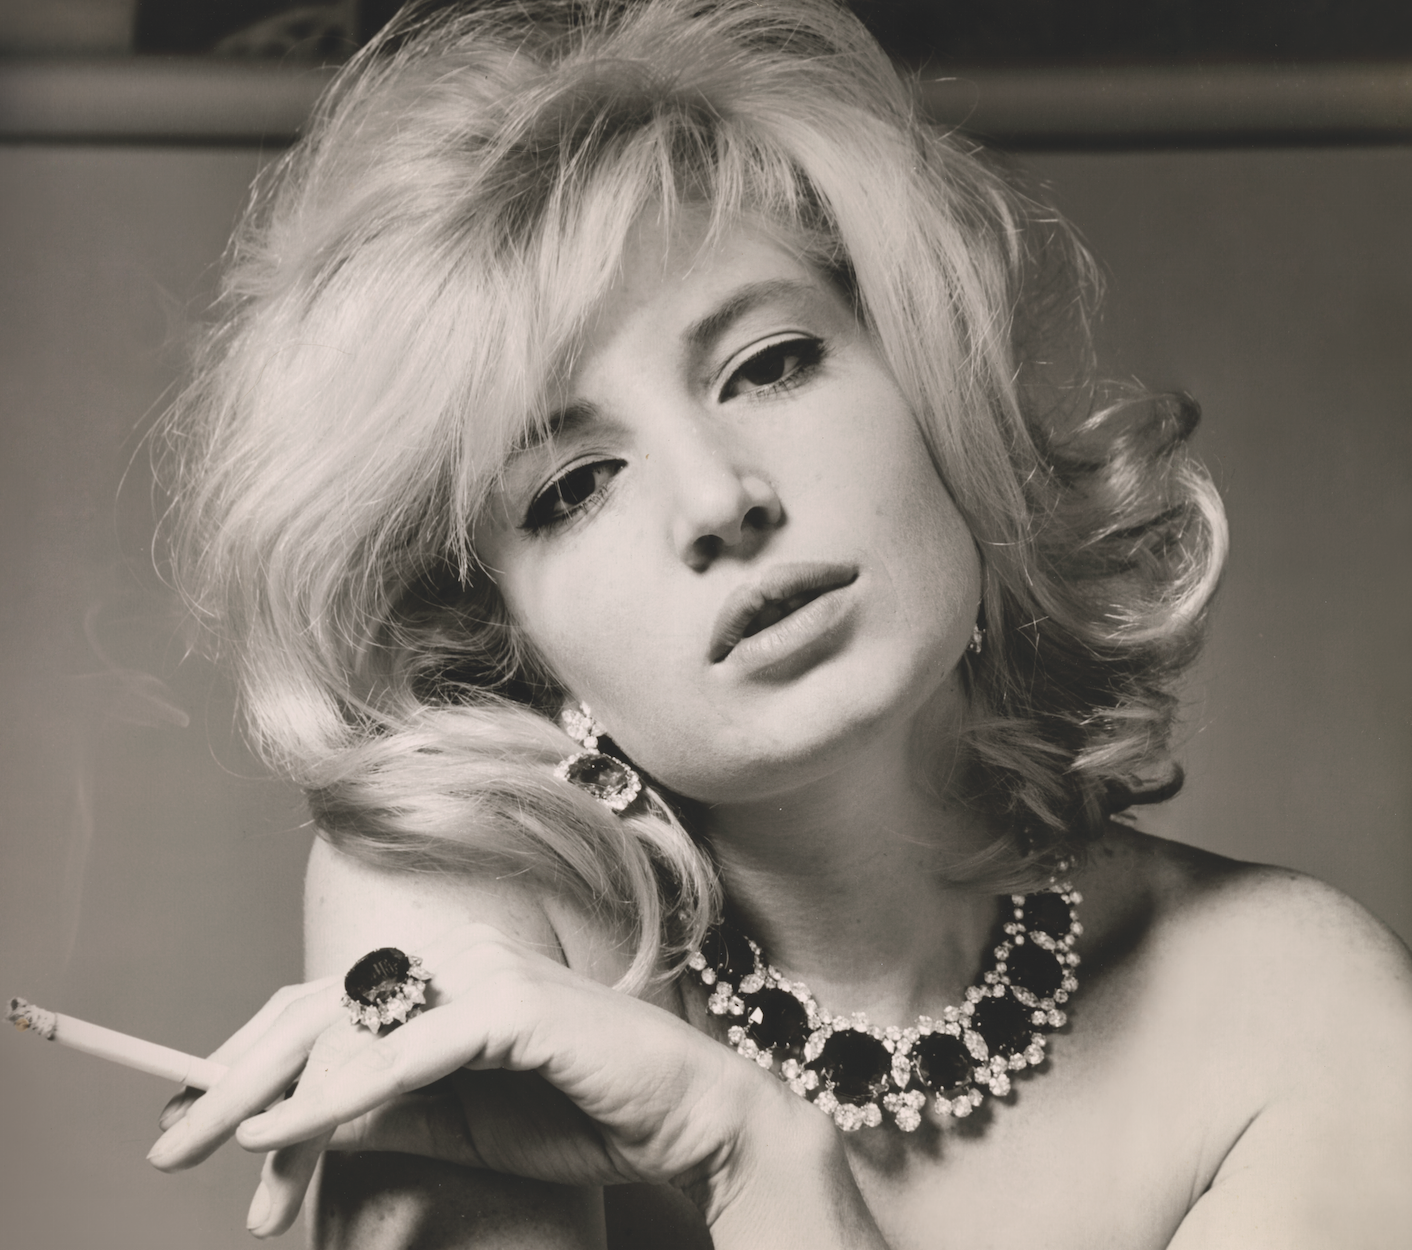 Who: Actress Monica Vitti Known for: Vitti was most famous for her role in L'Avventura, a murder mystery directed by her lover Michelangelo Antonioni.